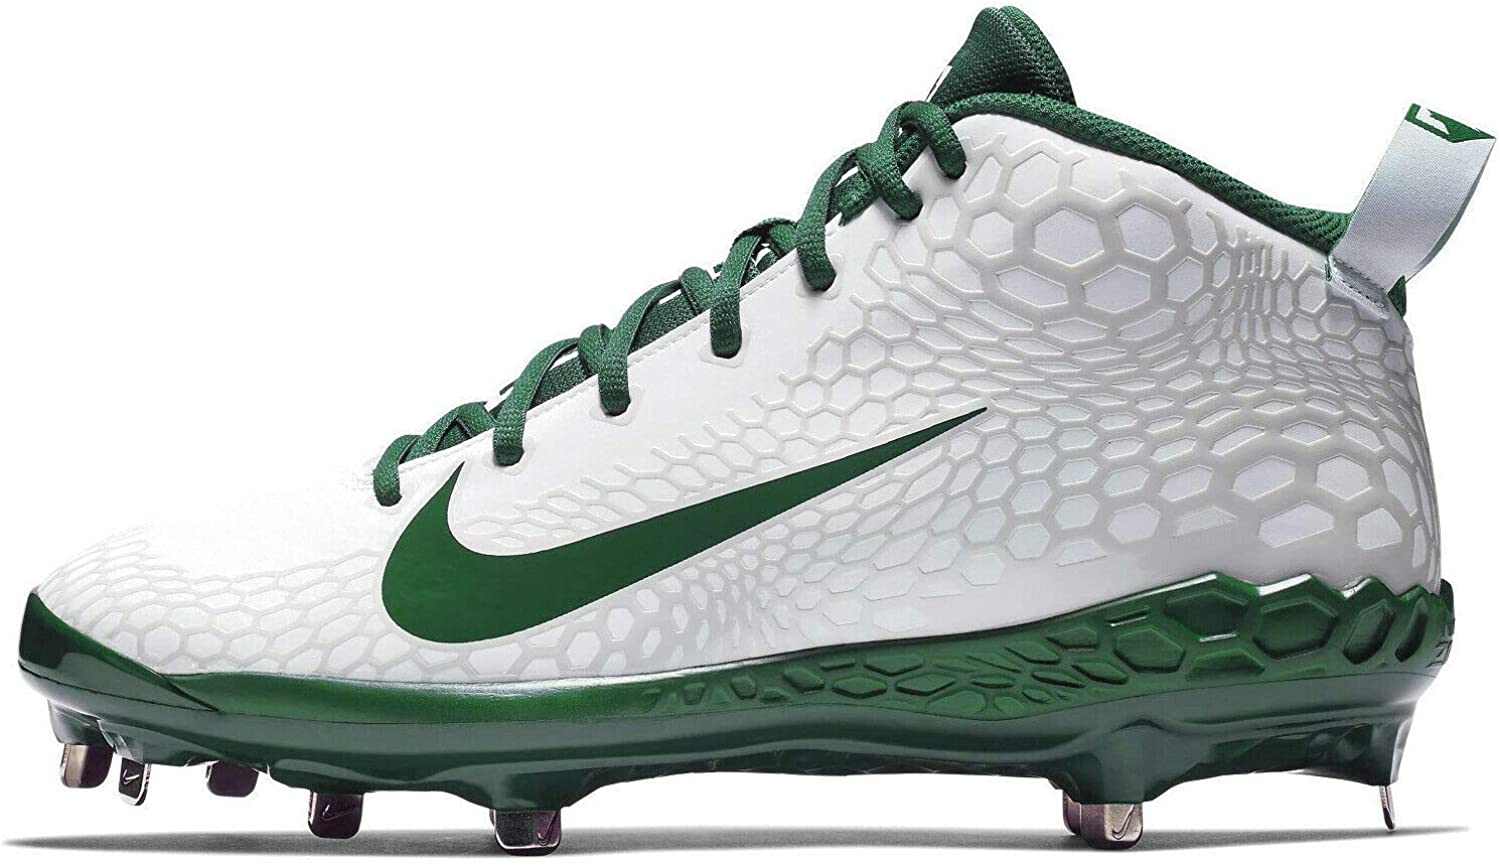 Force Trout 5 Pro Baseball Cleat